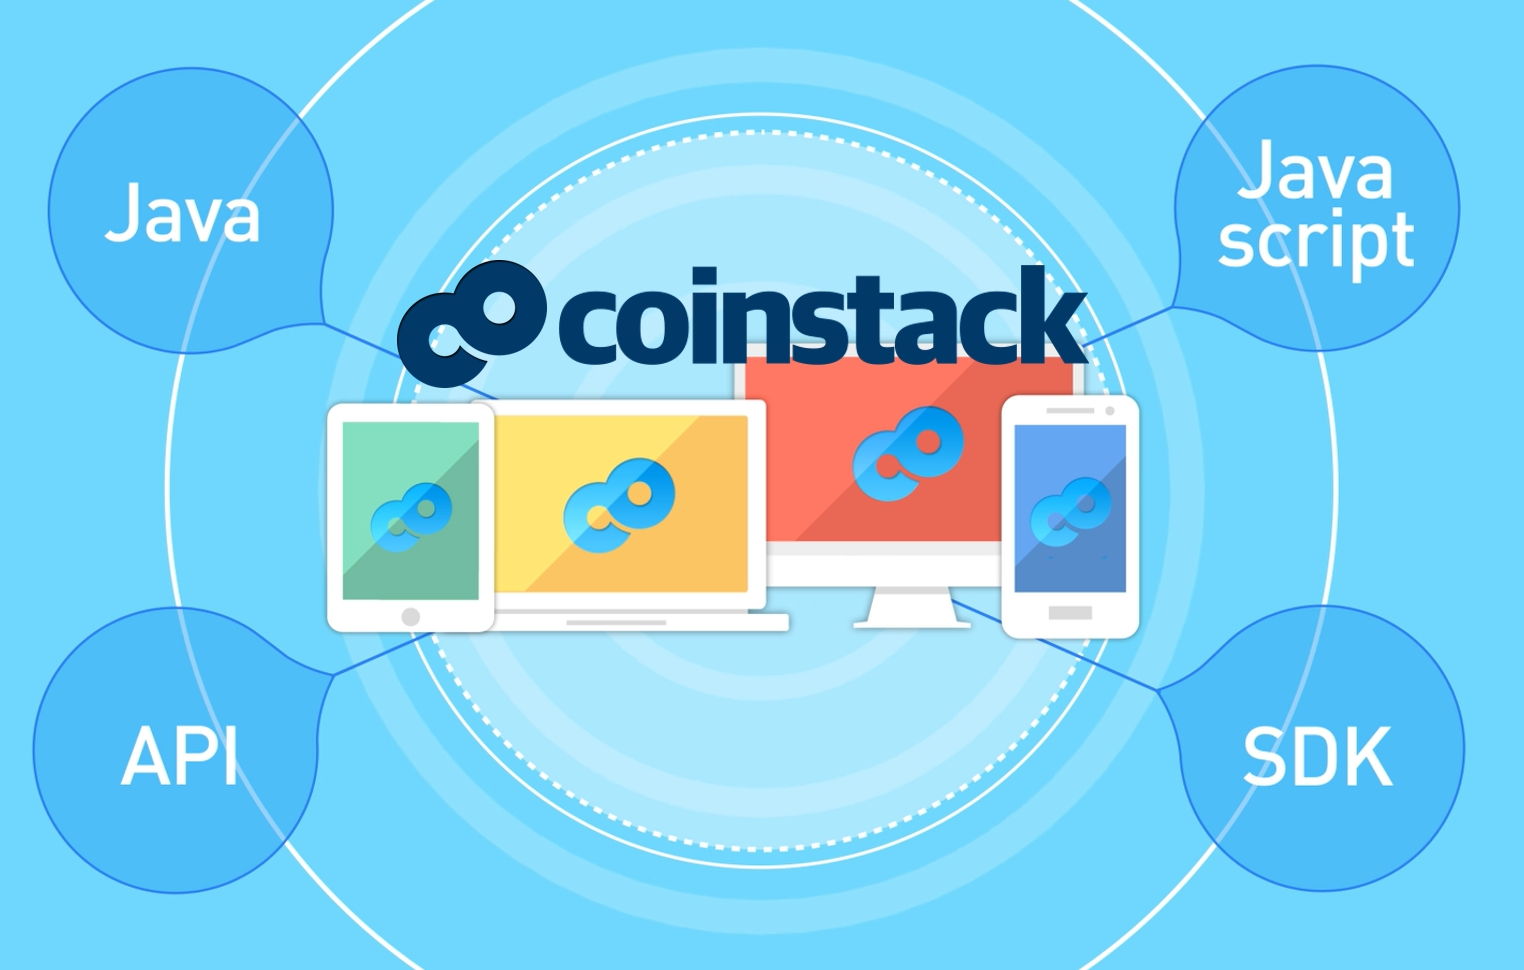 A blockchain startup in Korea, Blocko Inc. participated in the KRX Startup Market Exchange project and implemented its blockchain technology 'Coinstack' for document and identity authentication. Coinstack is serviced in Cloud and On-premise and supports all types of applications and protocols available via the Bitcoin blockchain. KRX KSM (Korea Startup Market) is a marketplace where the equity shares of startup companies can be traded in the open market. (Graphic: Business Wire)